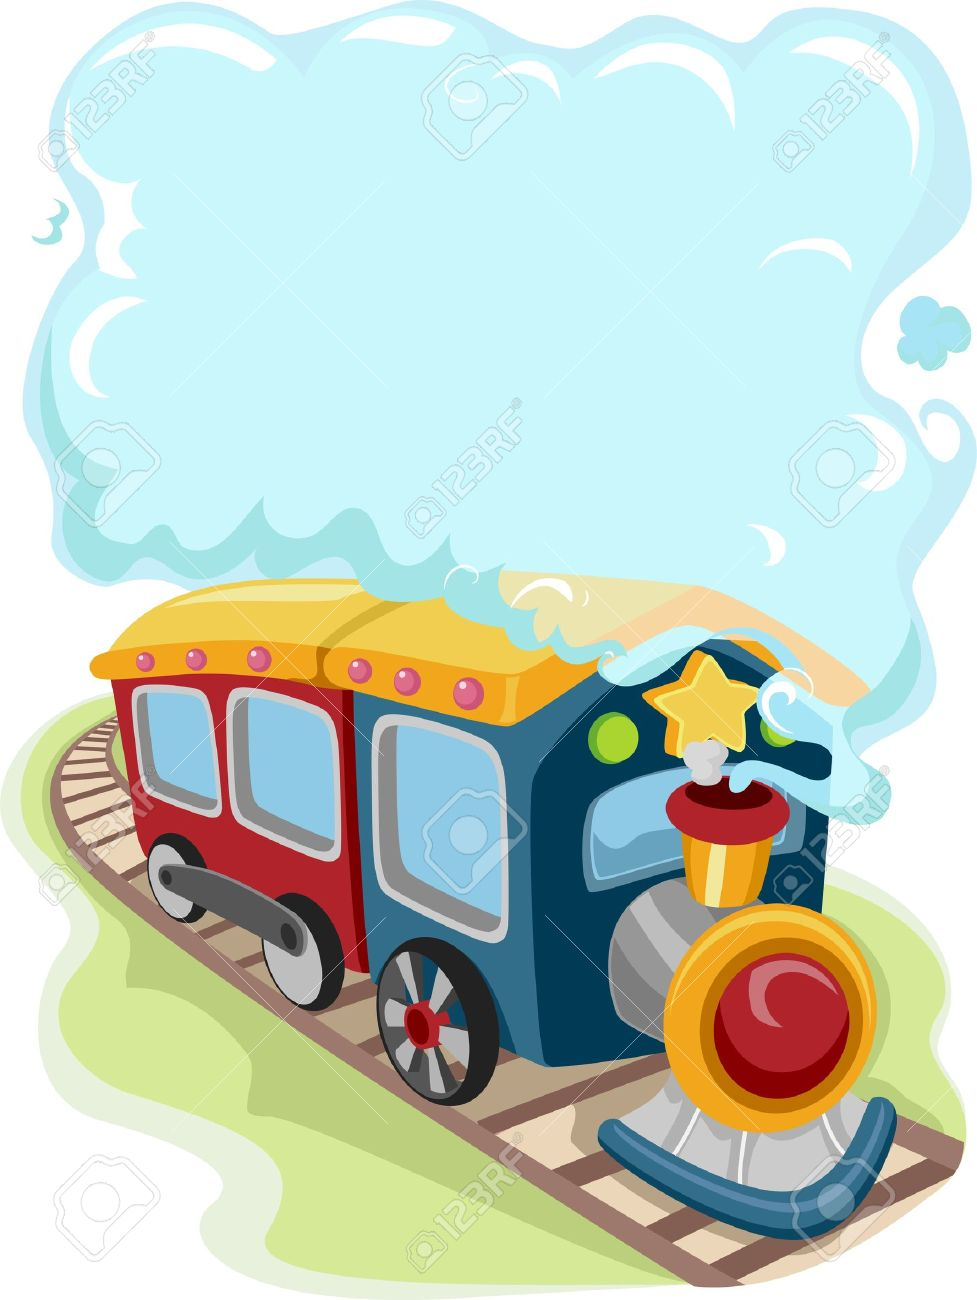 Illustration Of A Locomotive Train Toy Emitting Smoke For.